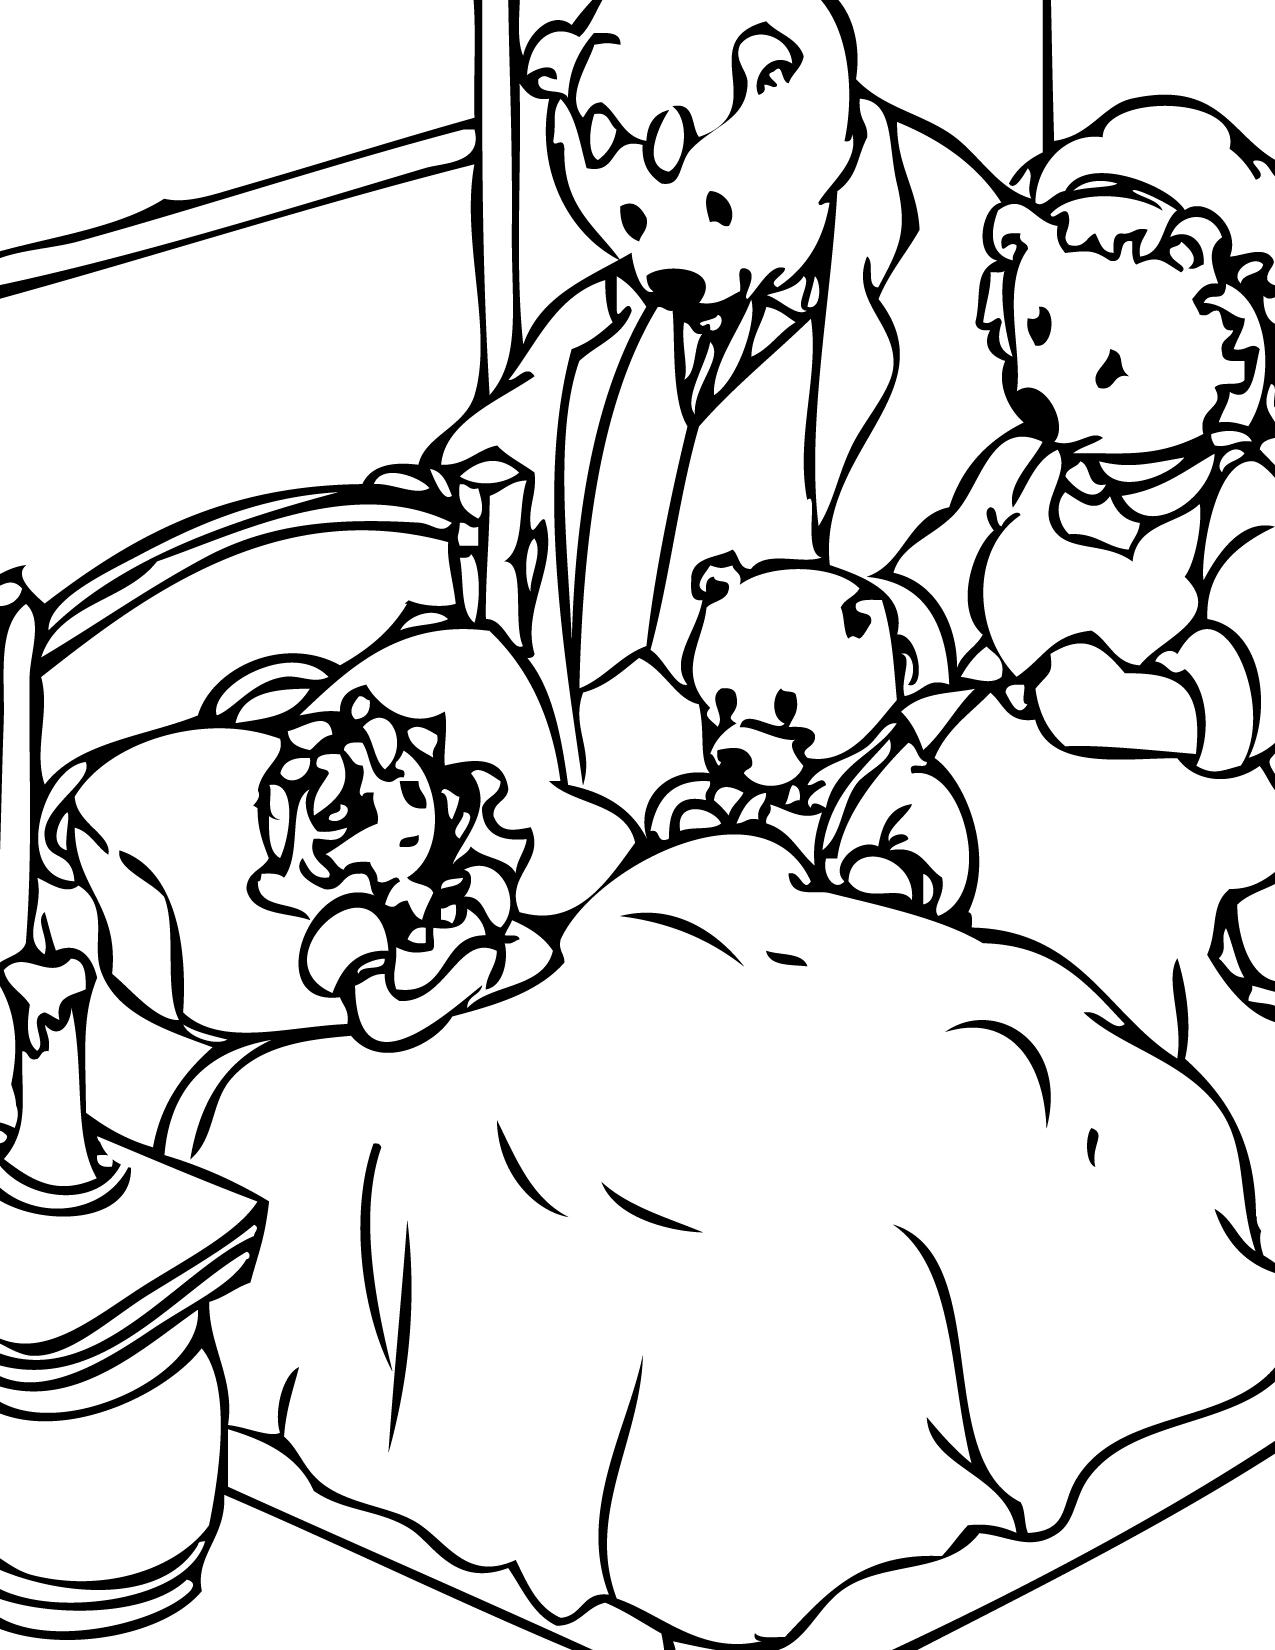 Coloring Pages Three Bears Coloring Pages goldilocks and the three bears coloring pages az page handipoints